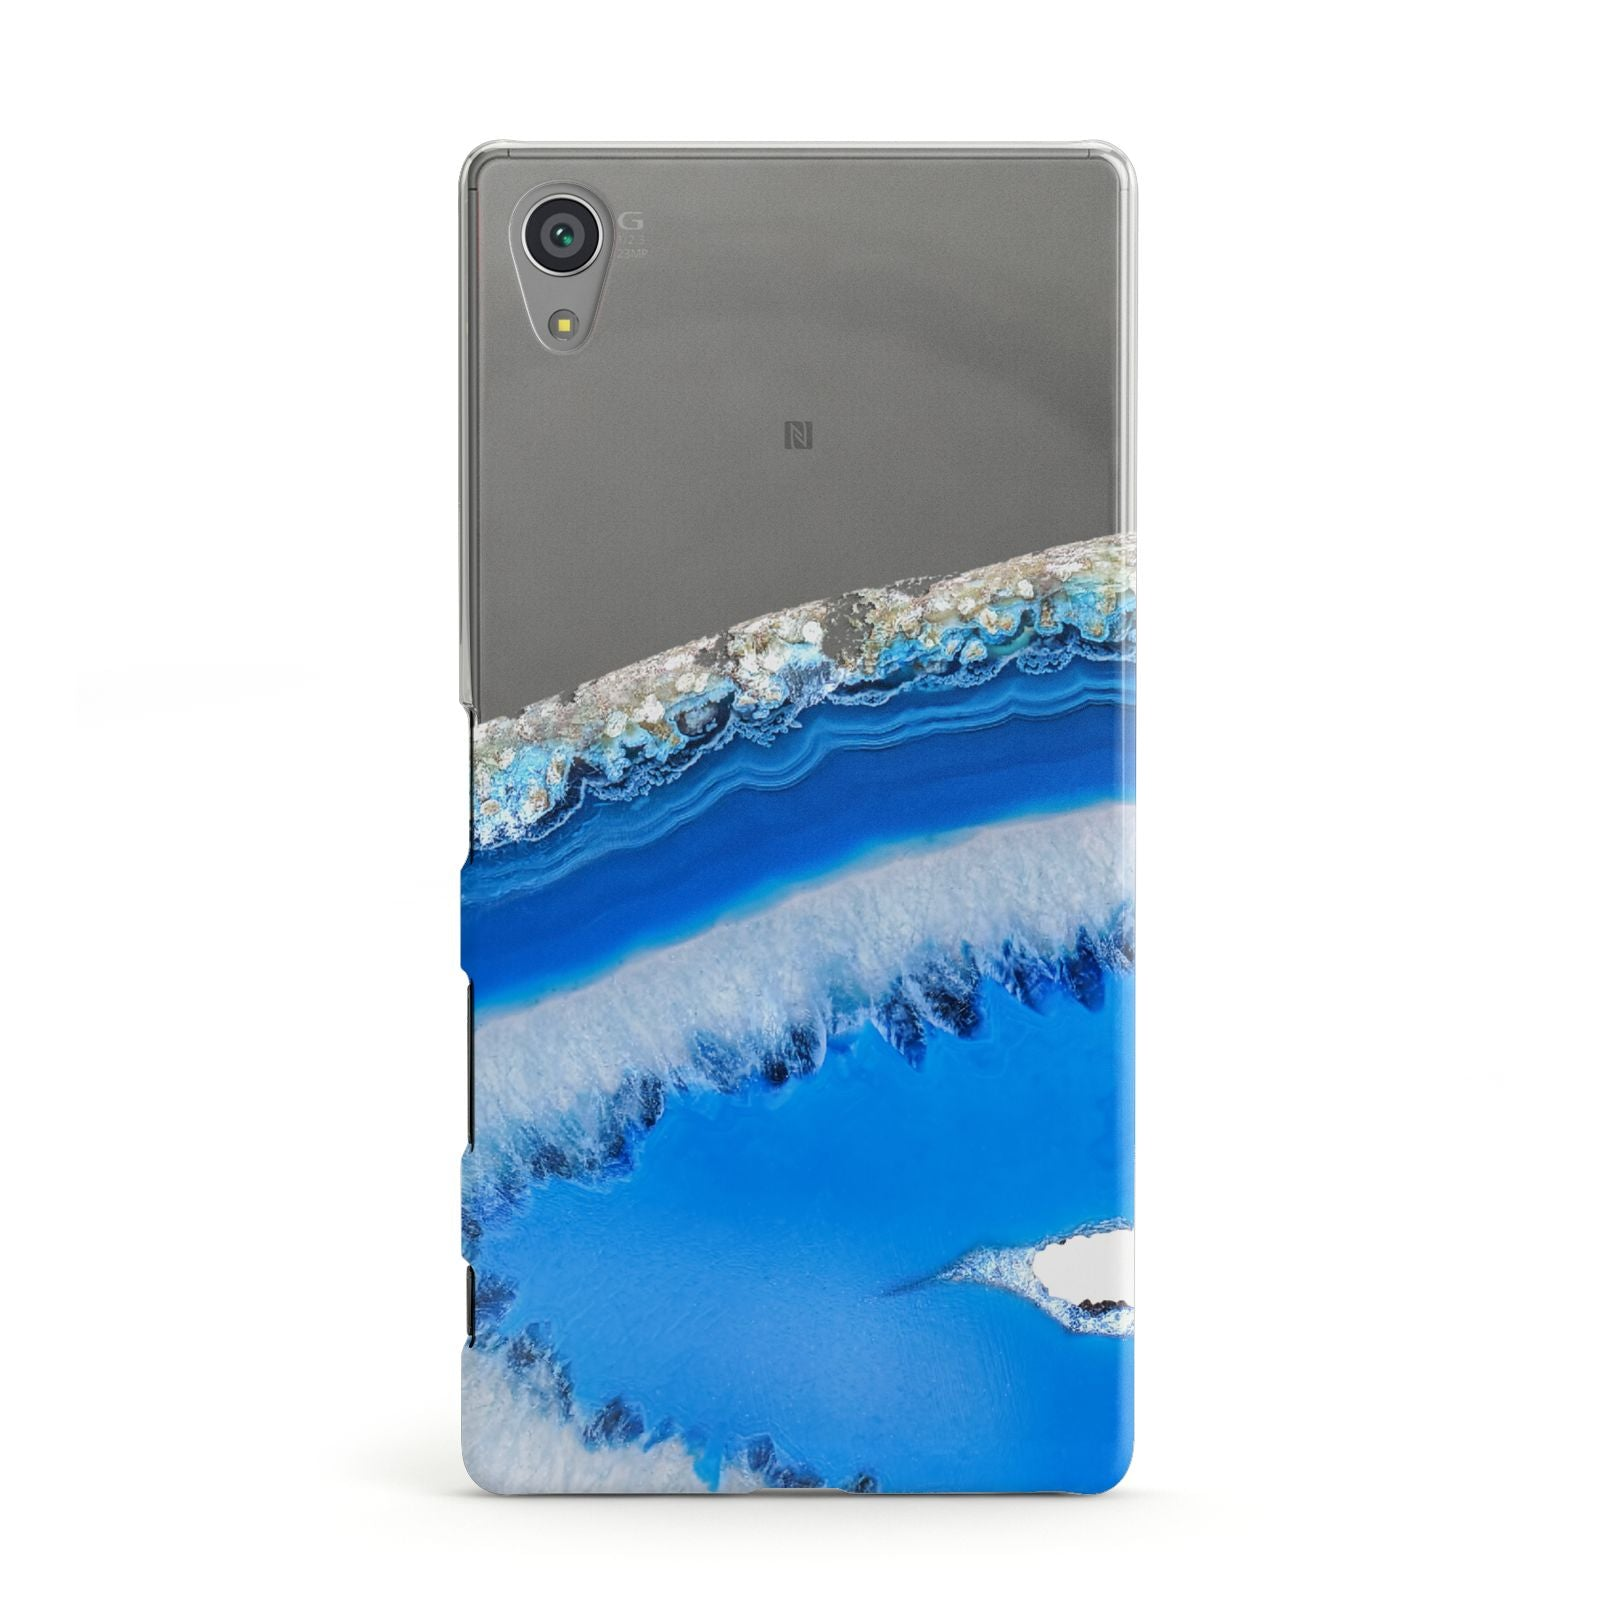 Agate Blue Sony Xperia Case